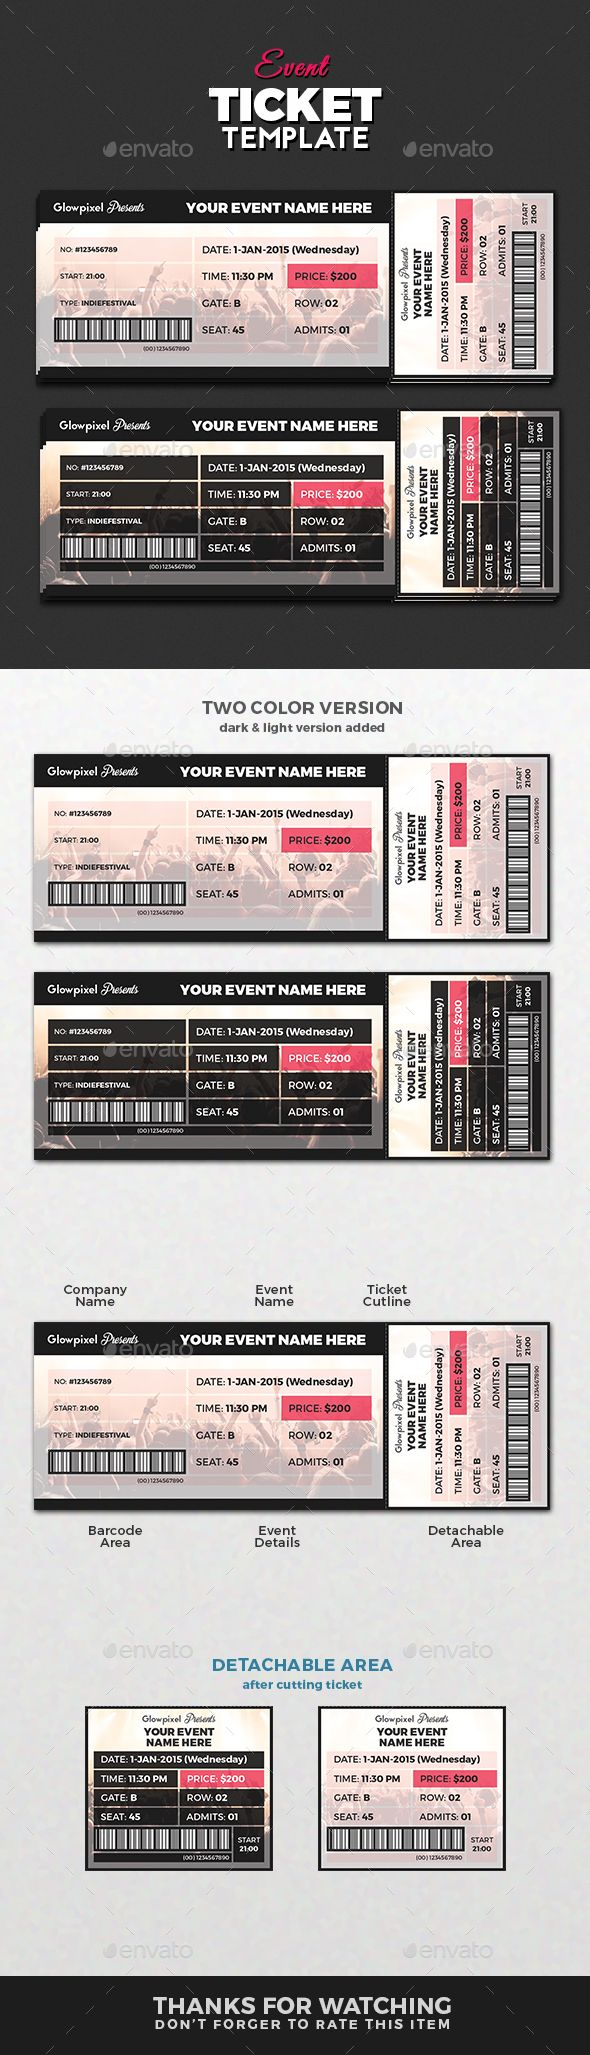 Perfect Ticket Template Photoshop Model Professional Resume - Event ticket template photoshop